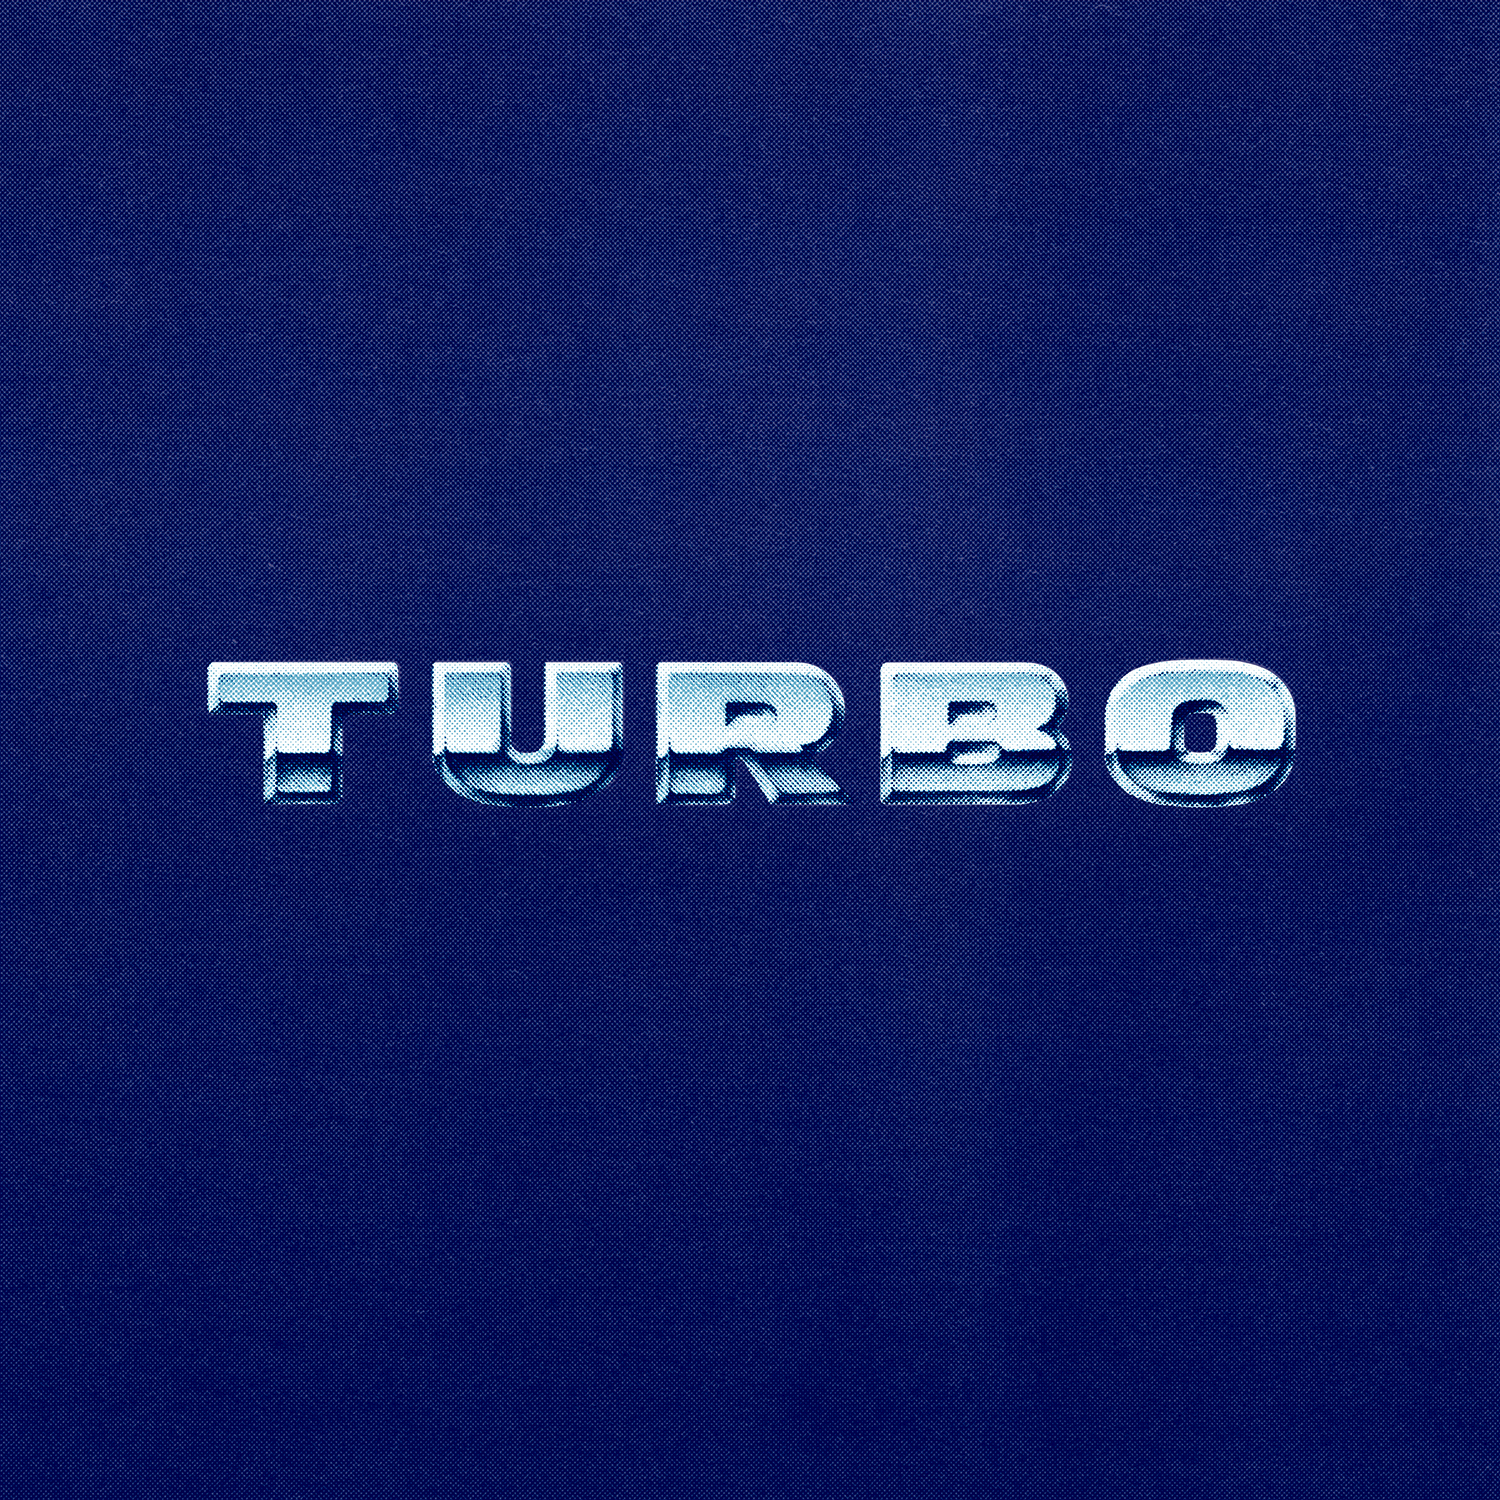 Fracture Presents: Turbo